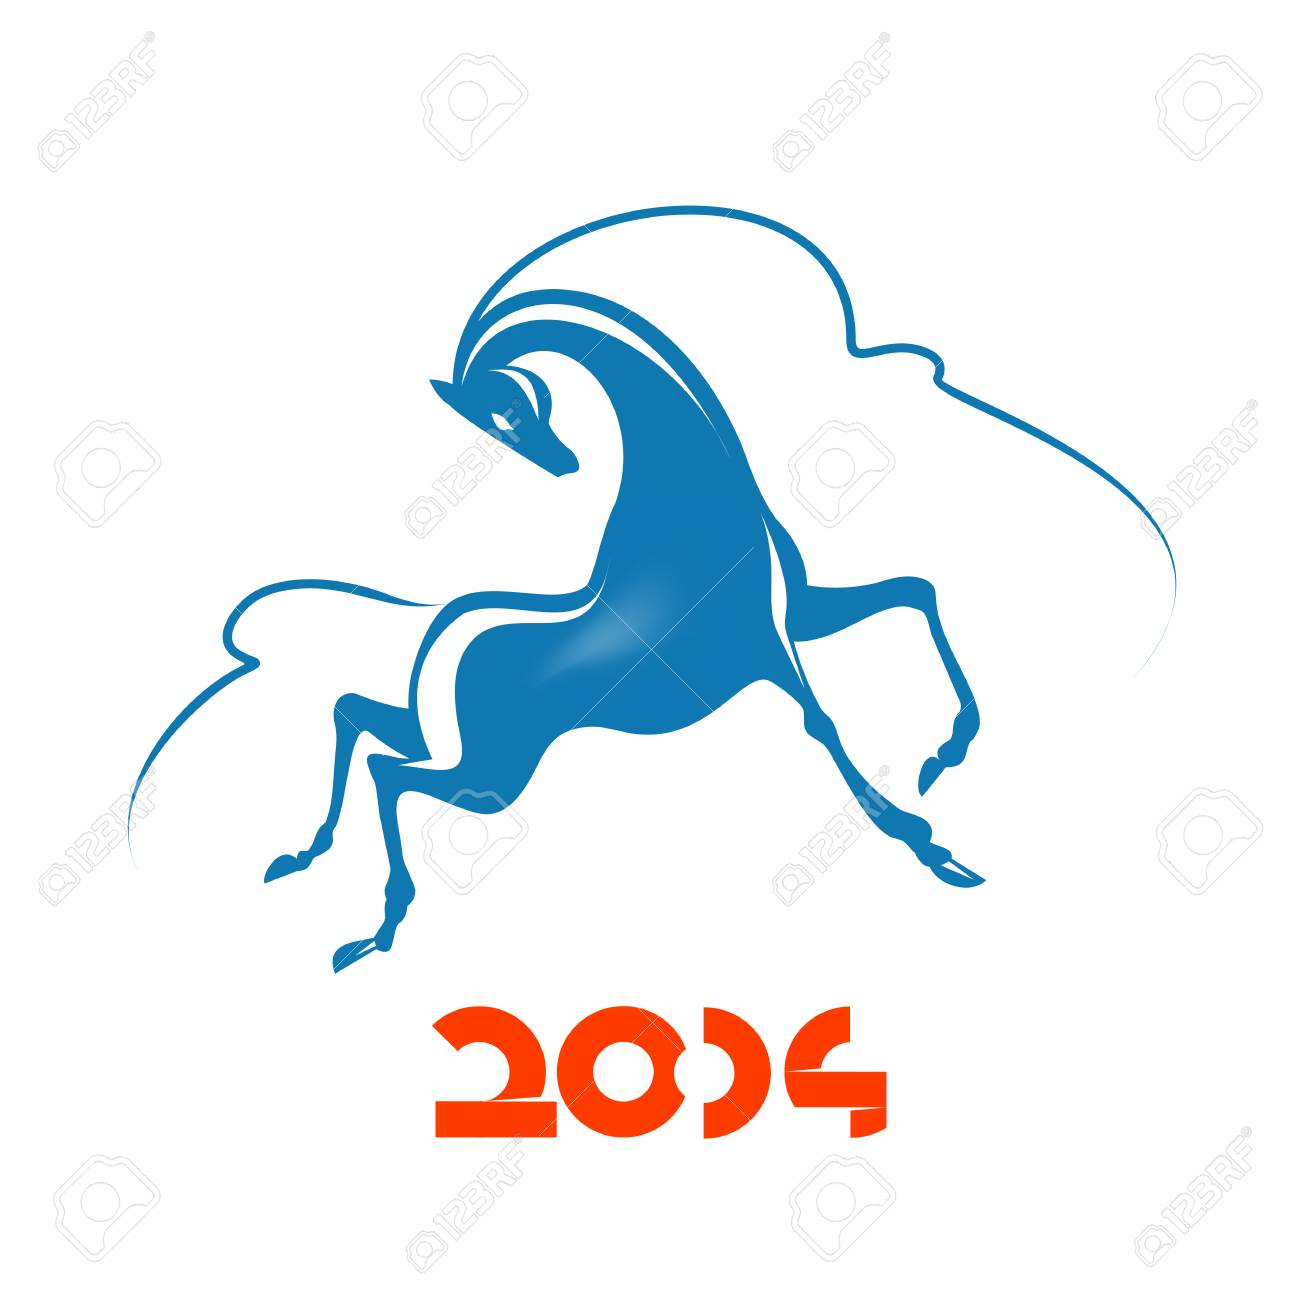 Year of the horse Stock Vector - 23042286